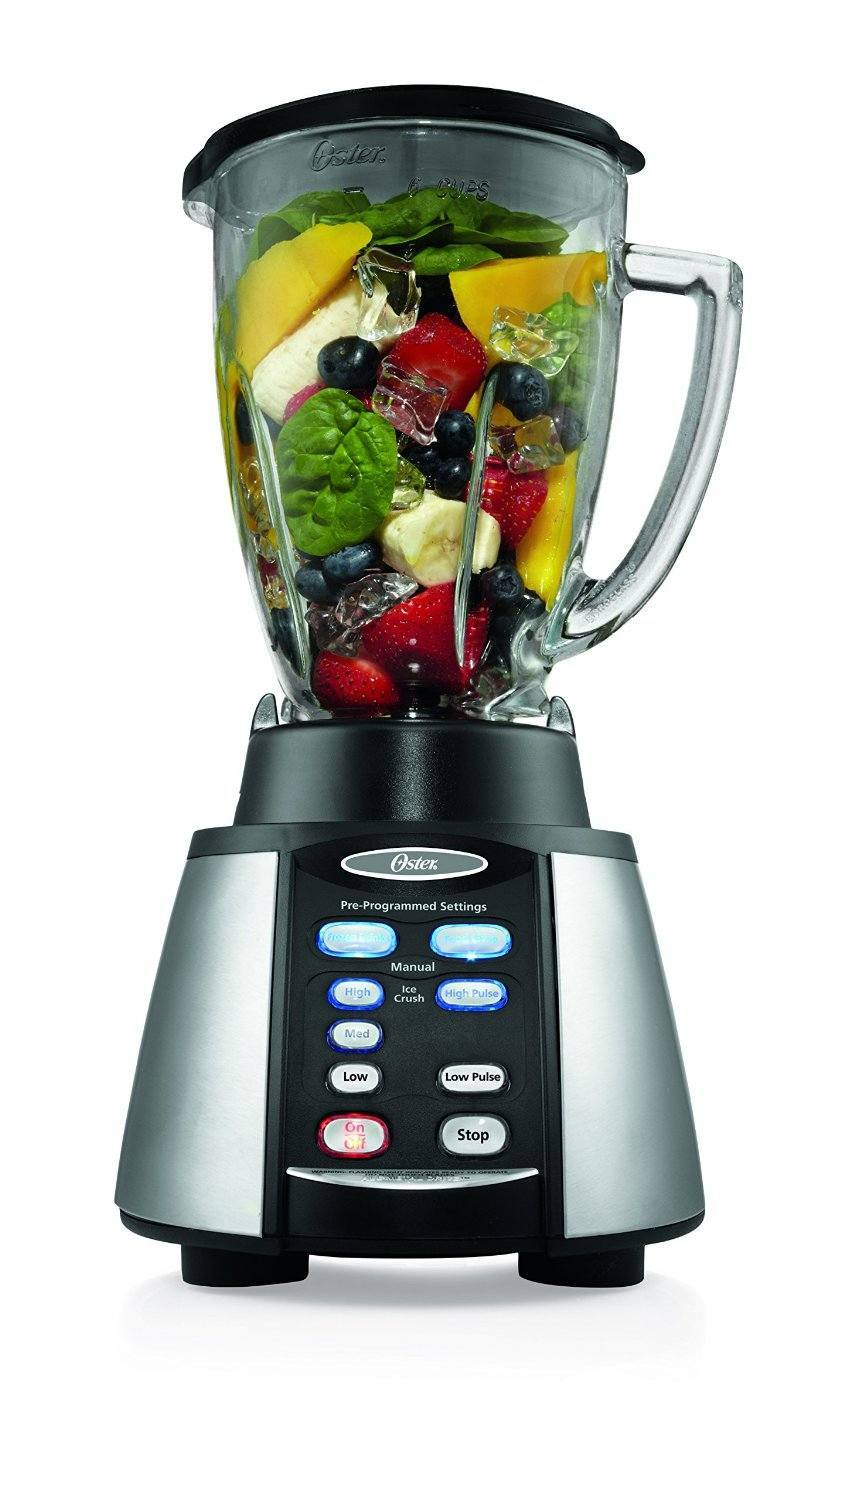 Best smoothie blender under $100